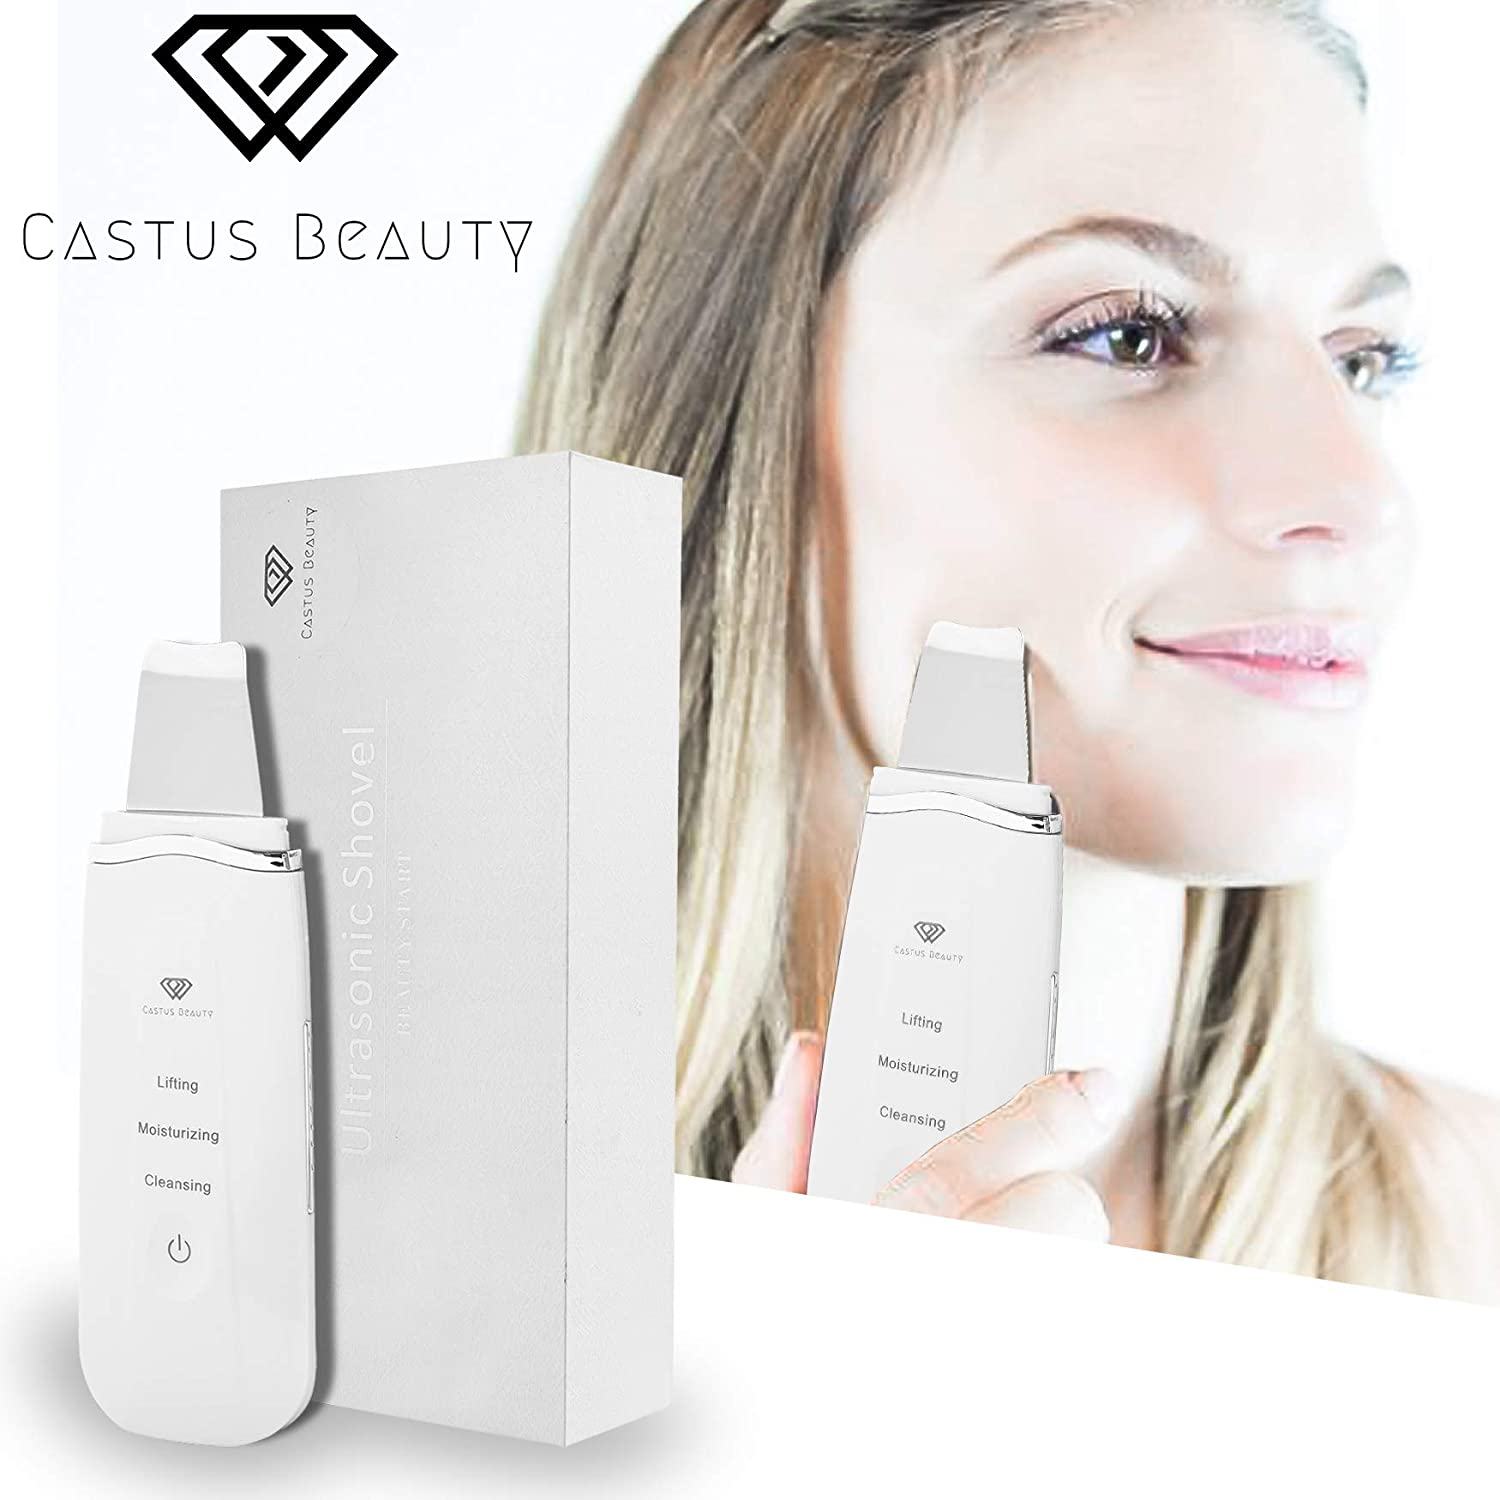 Blackhead Remover Facial Skin Scrubber Castus Beauty-Pore Cleaner-Skin Exfoliator-Facial Skin Lifting-Comedone Extractor